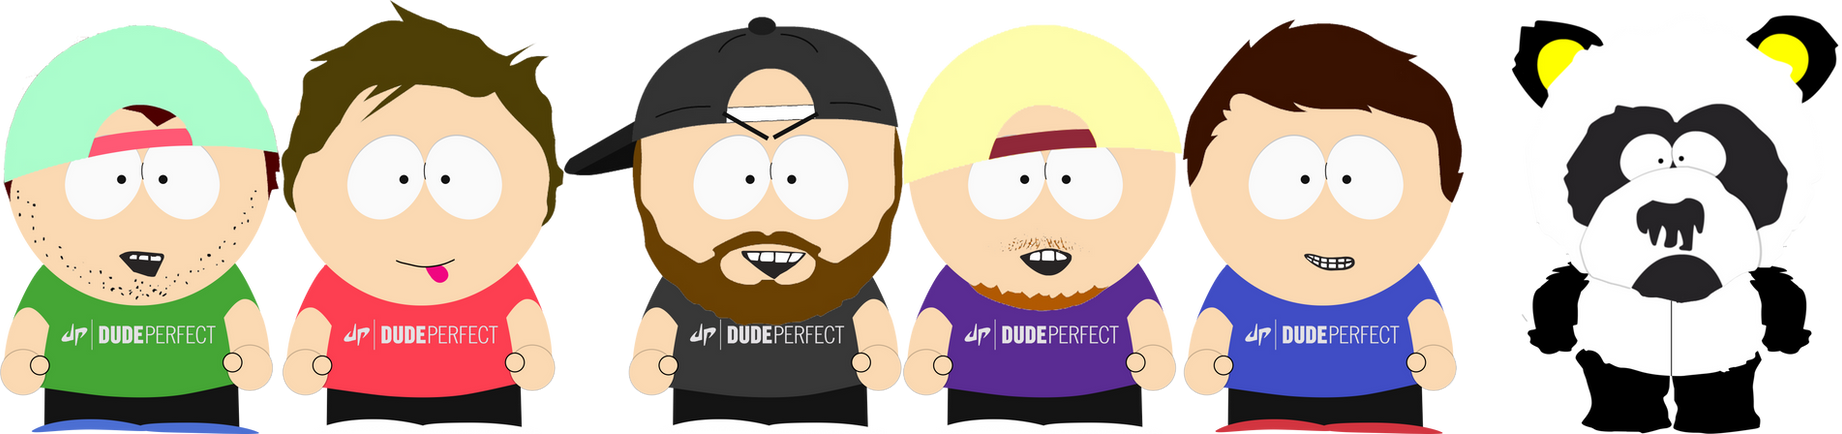 Dude perfect in south park by martin from sp on deviantart for Dude perfect coloring pages